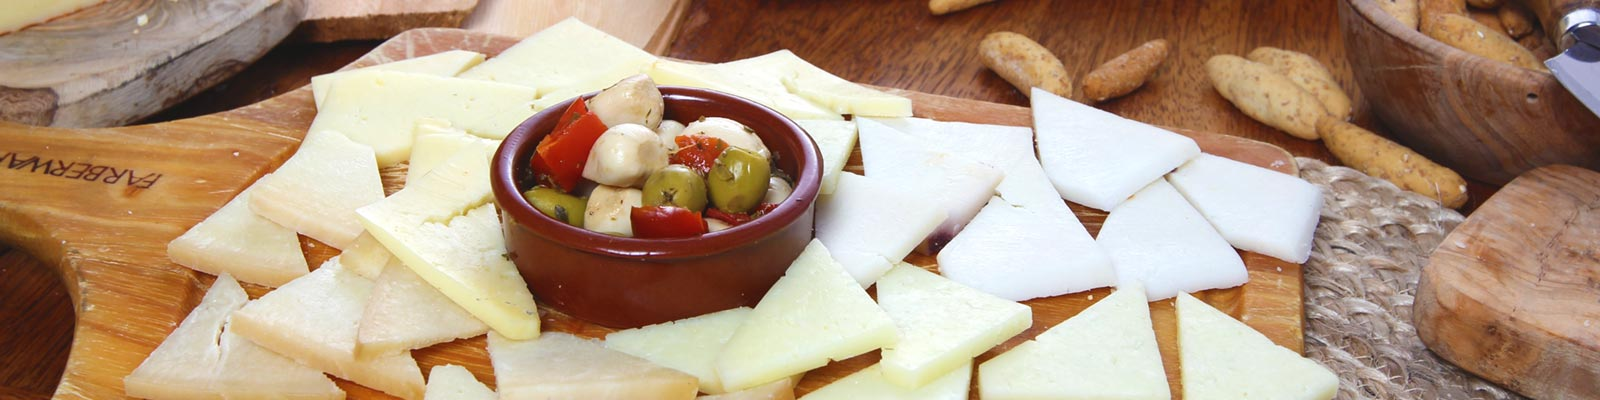 spanish-cheese-page.jpg